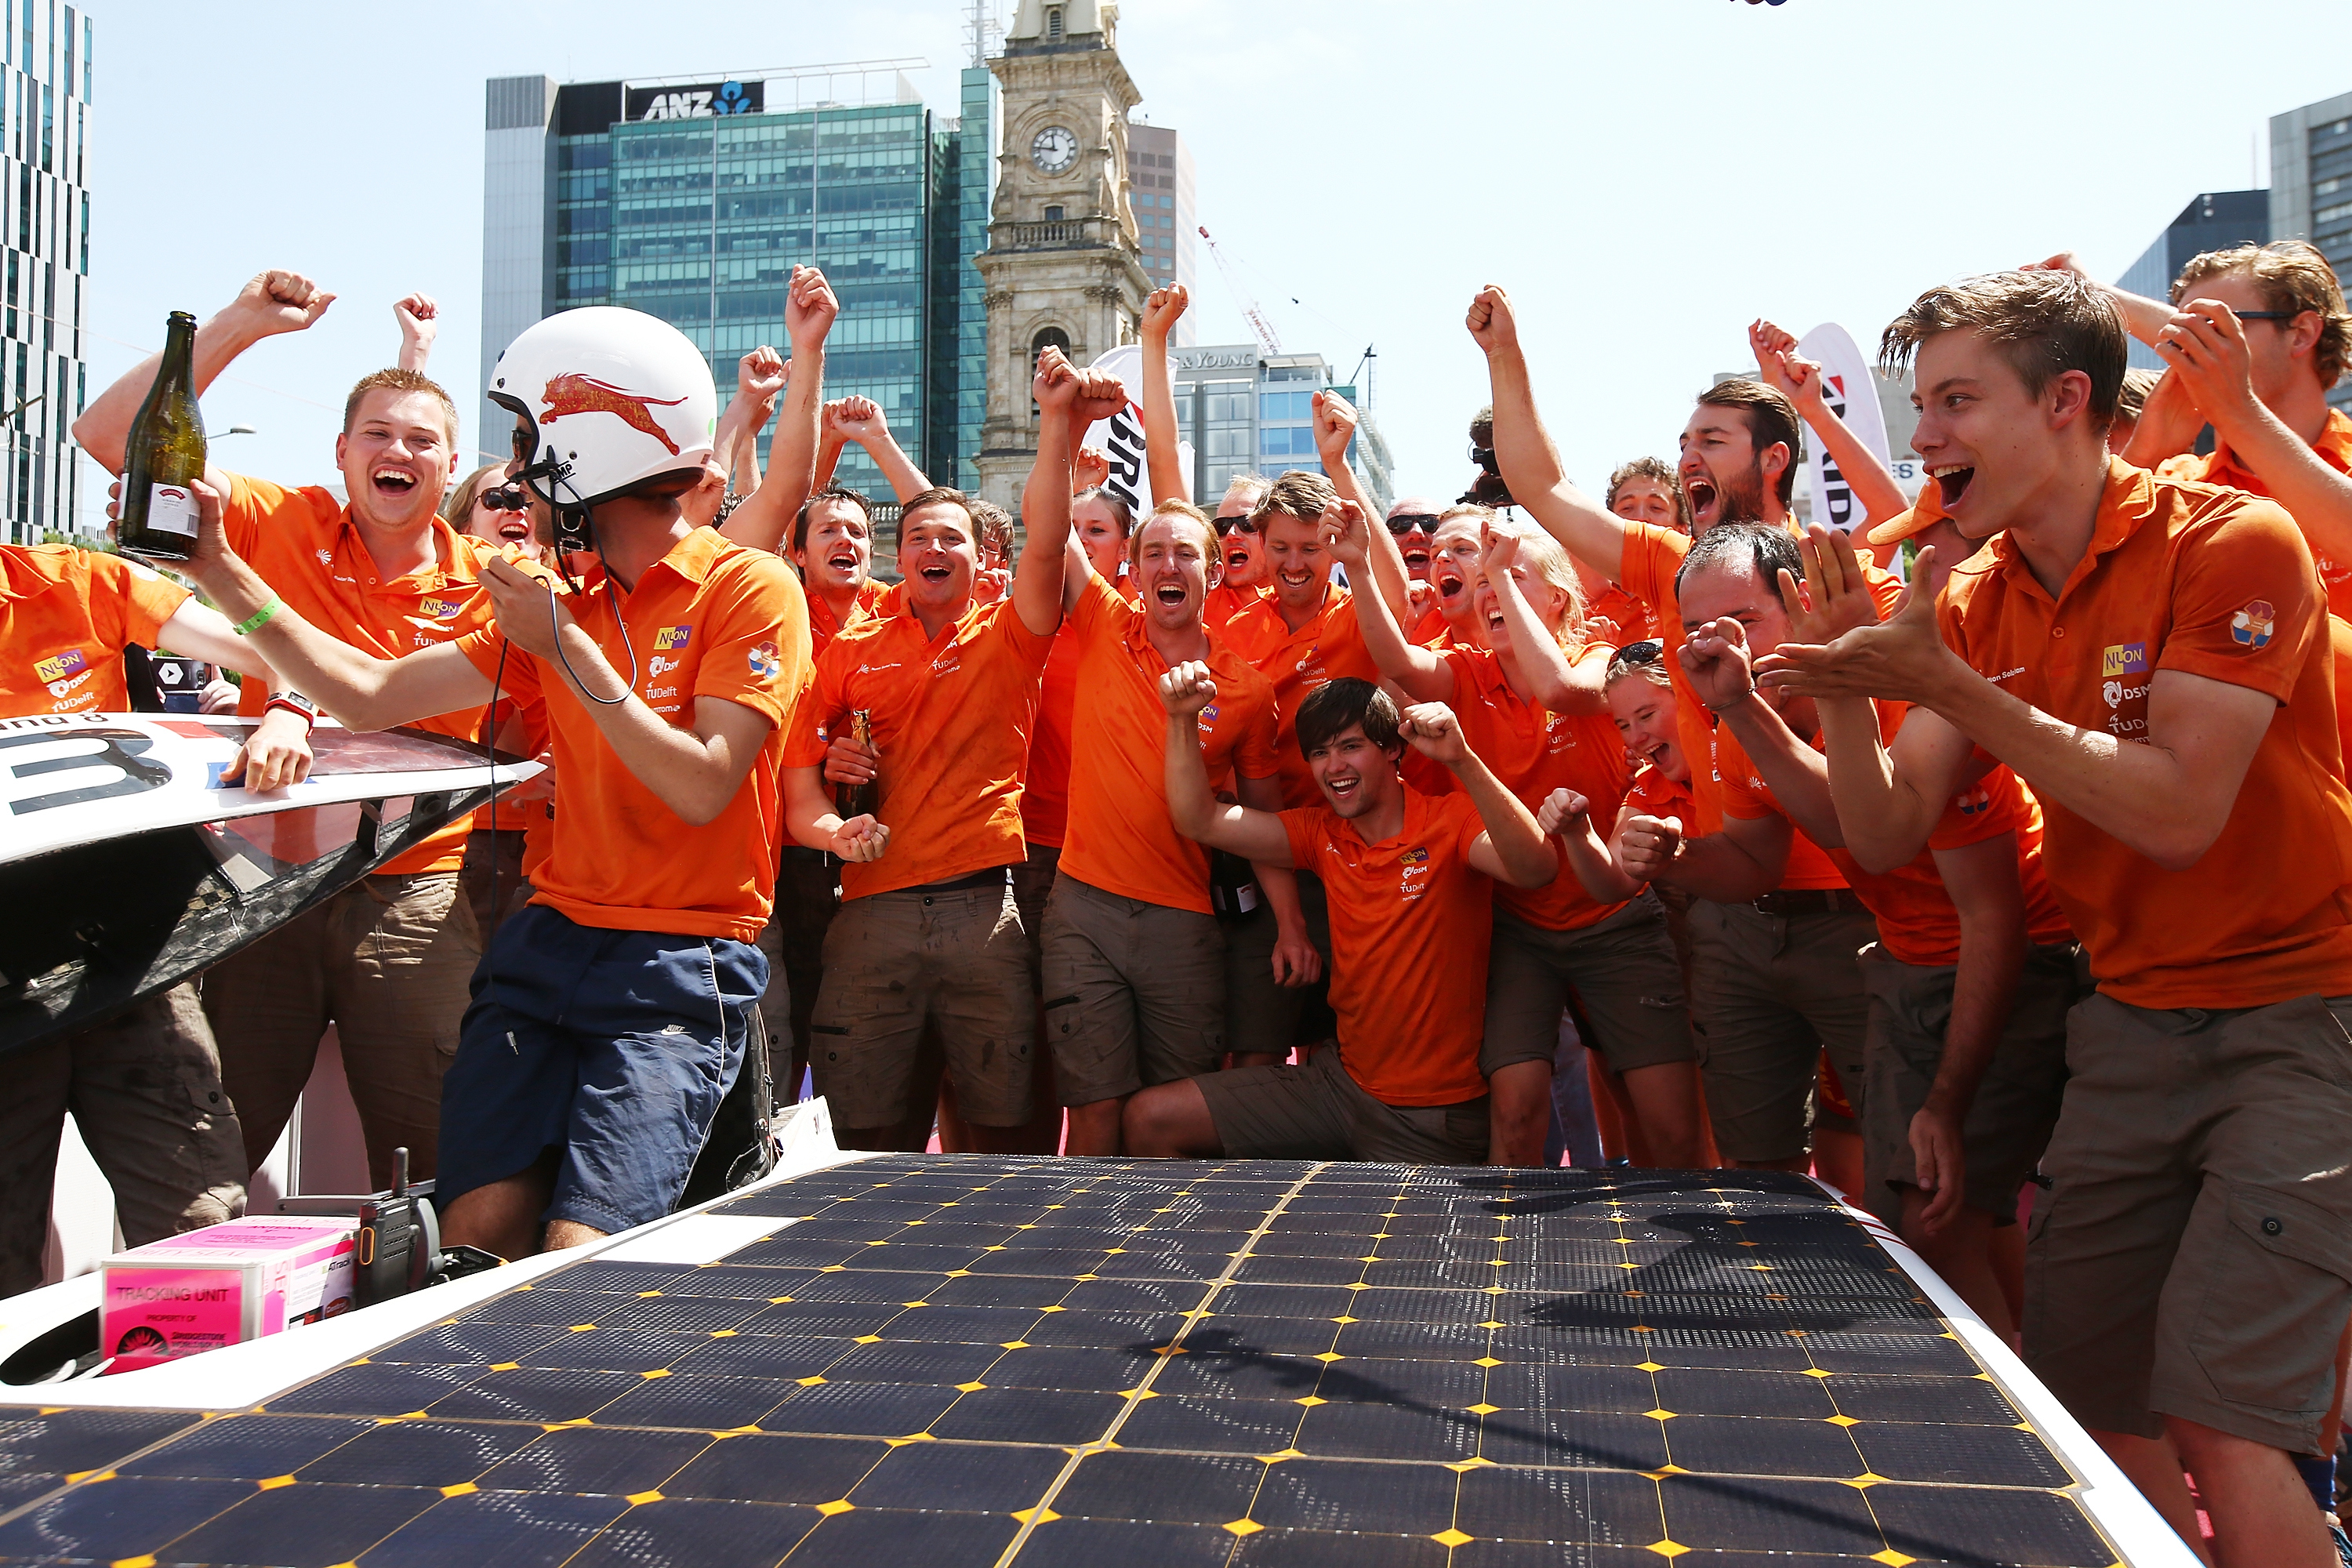 The Nuon Solar Team of the Netherlands celebrates after winning the 2015 Bridgestone World Solar Challenge at Victoria Square on Oct. 22, 2015 in Adelaide, Australia